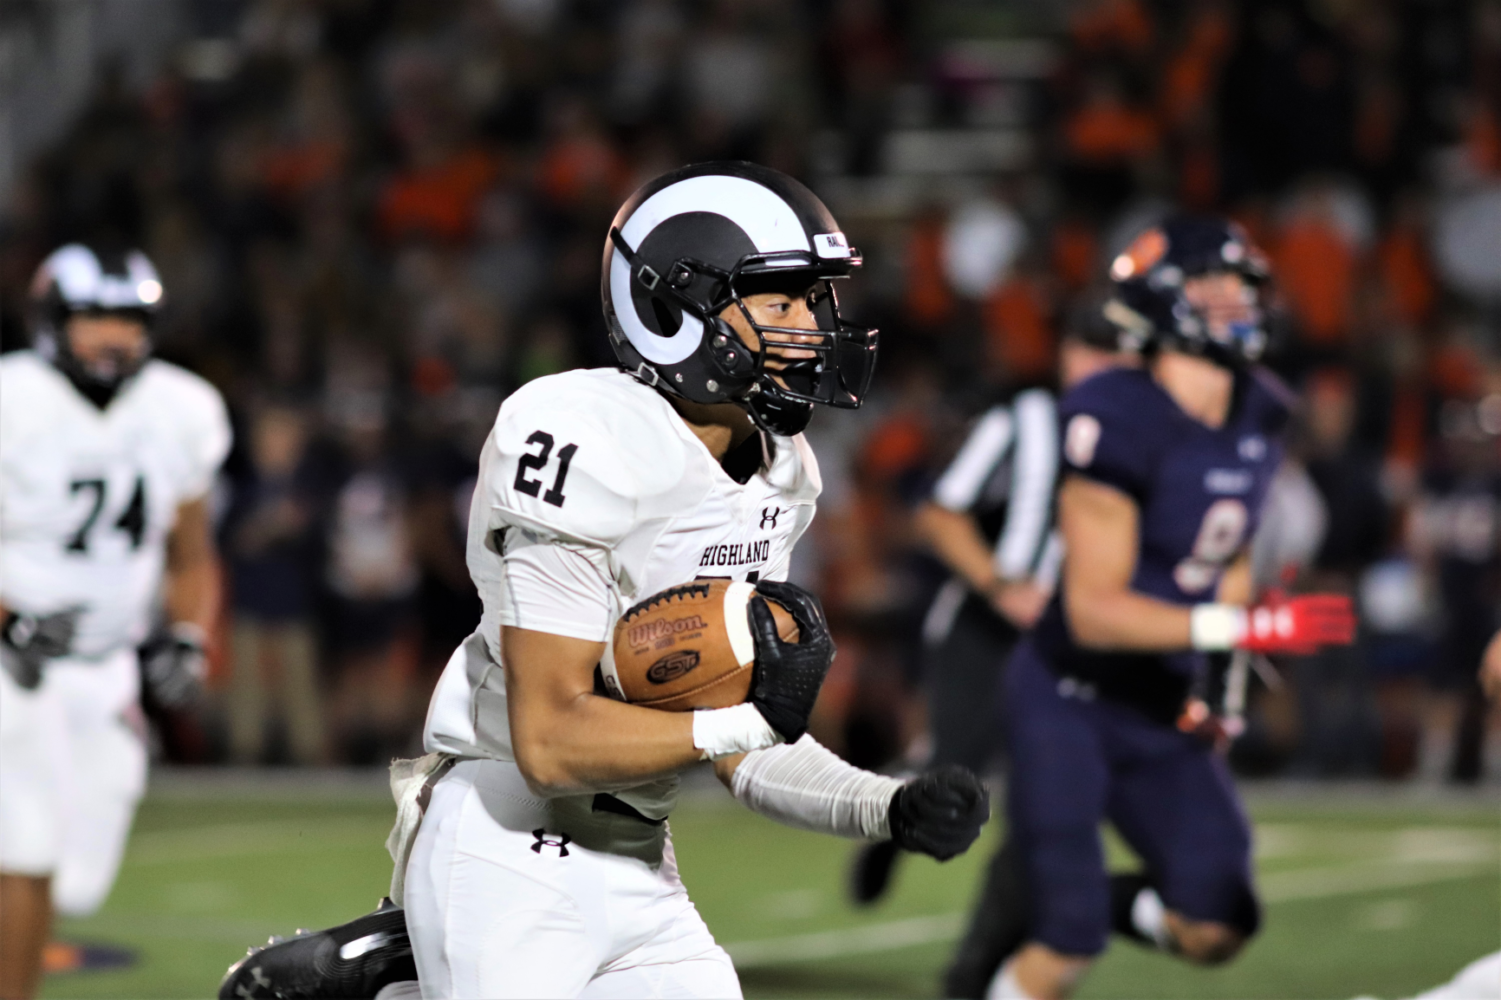 Highland football player goes for a touchdown.